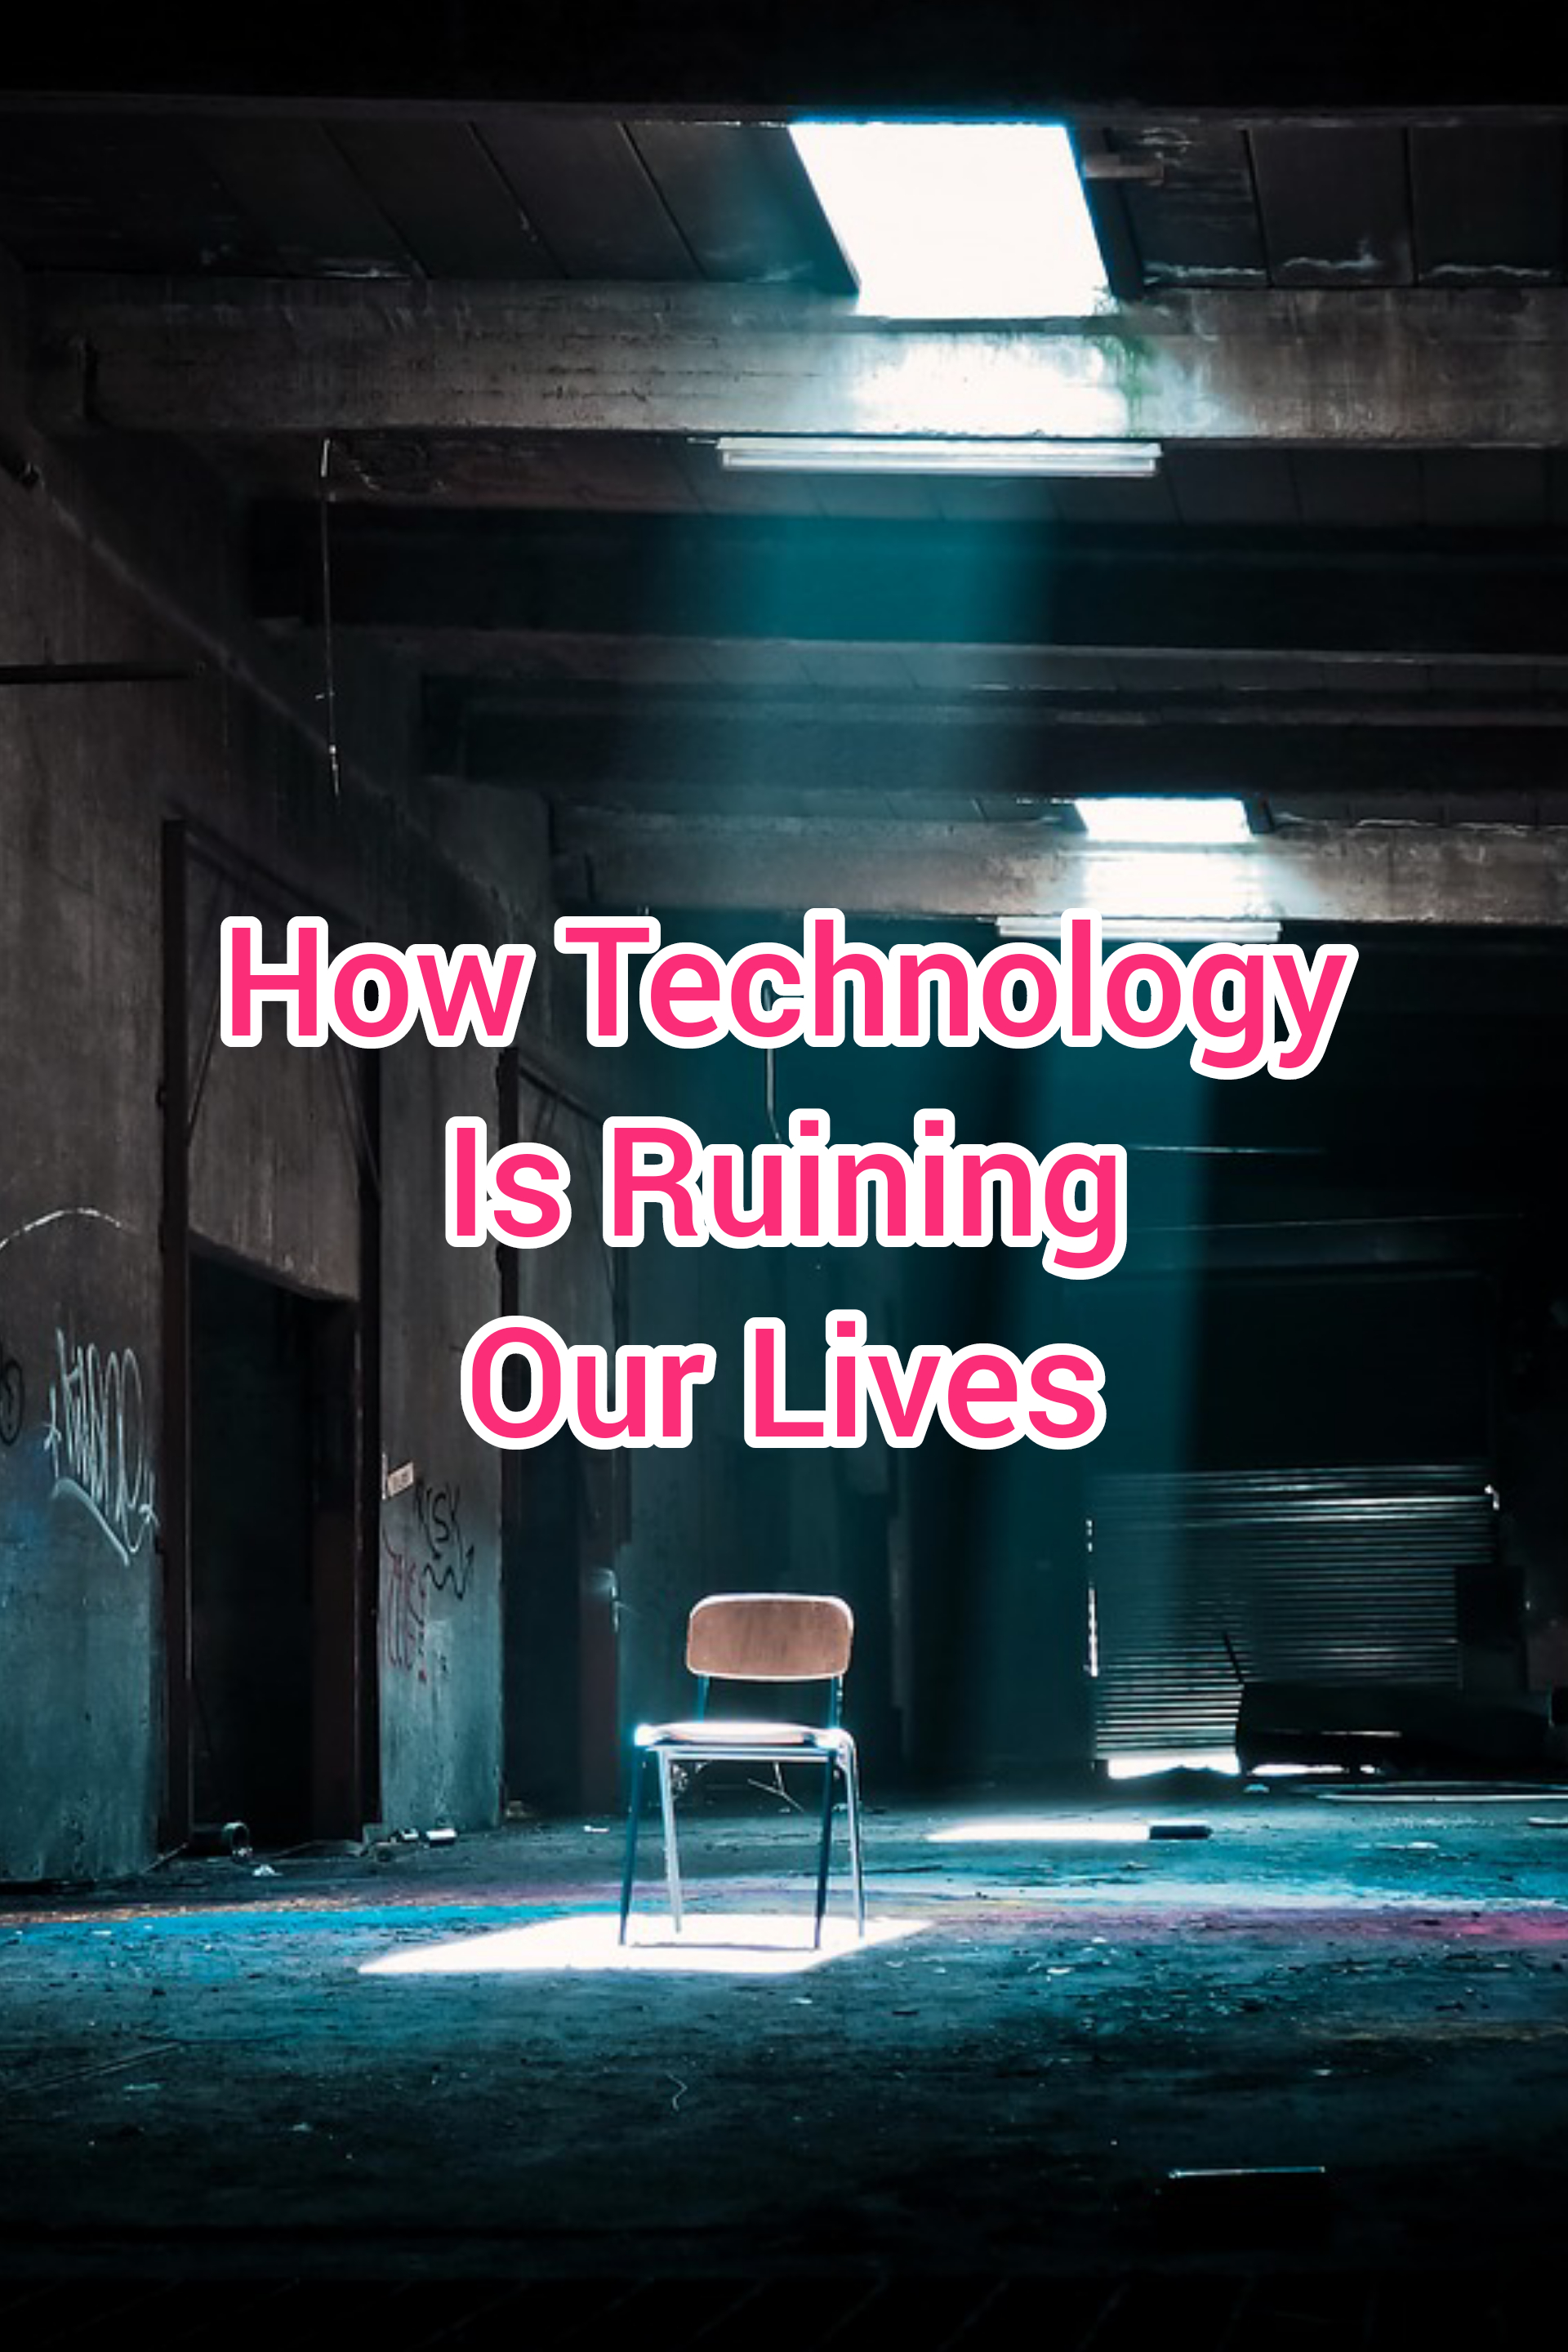 How Technology Is Ruining Our Lives